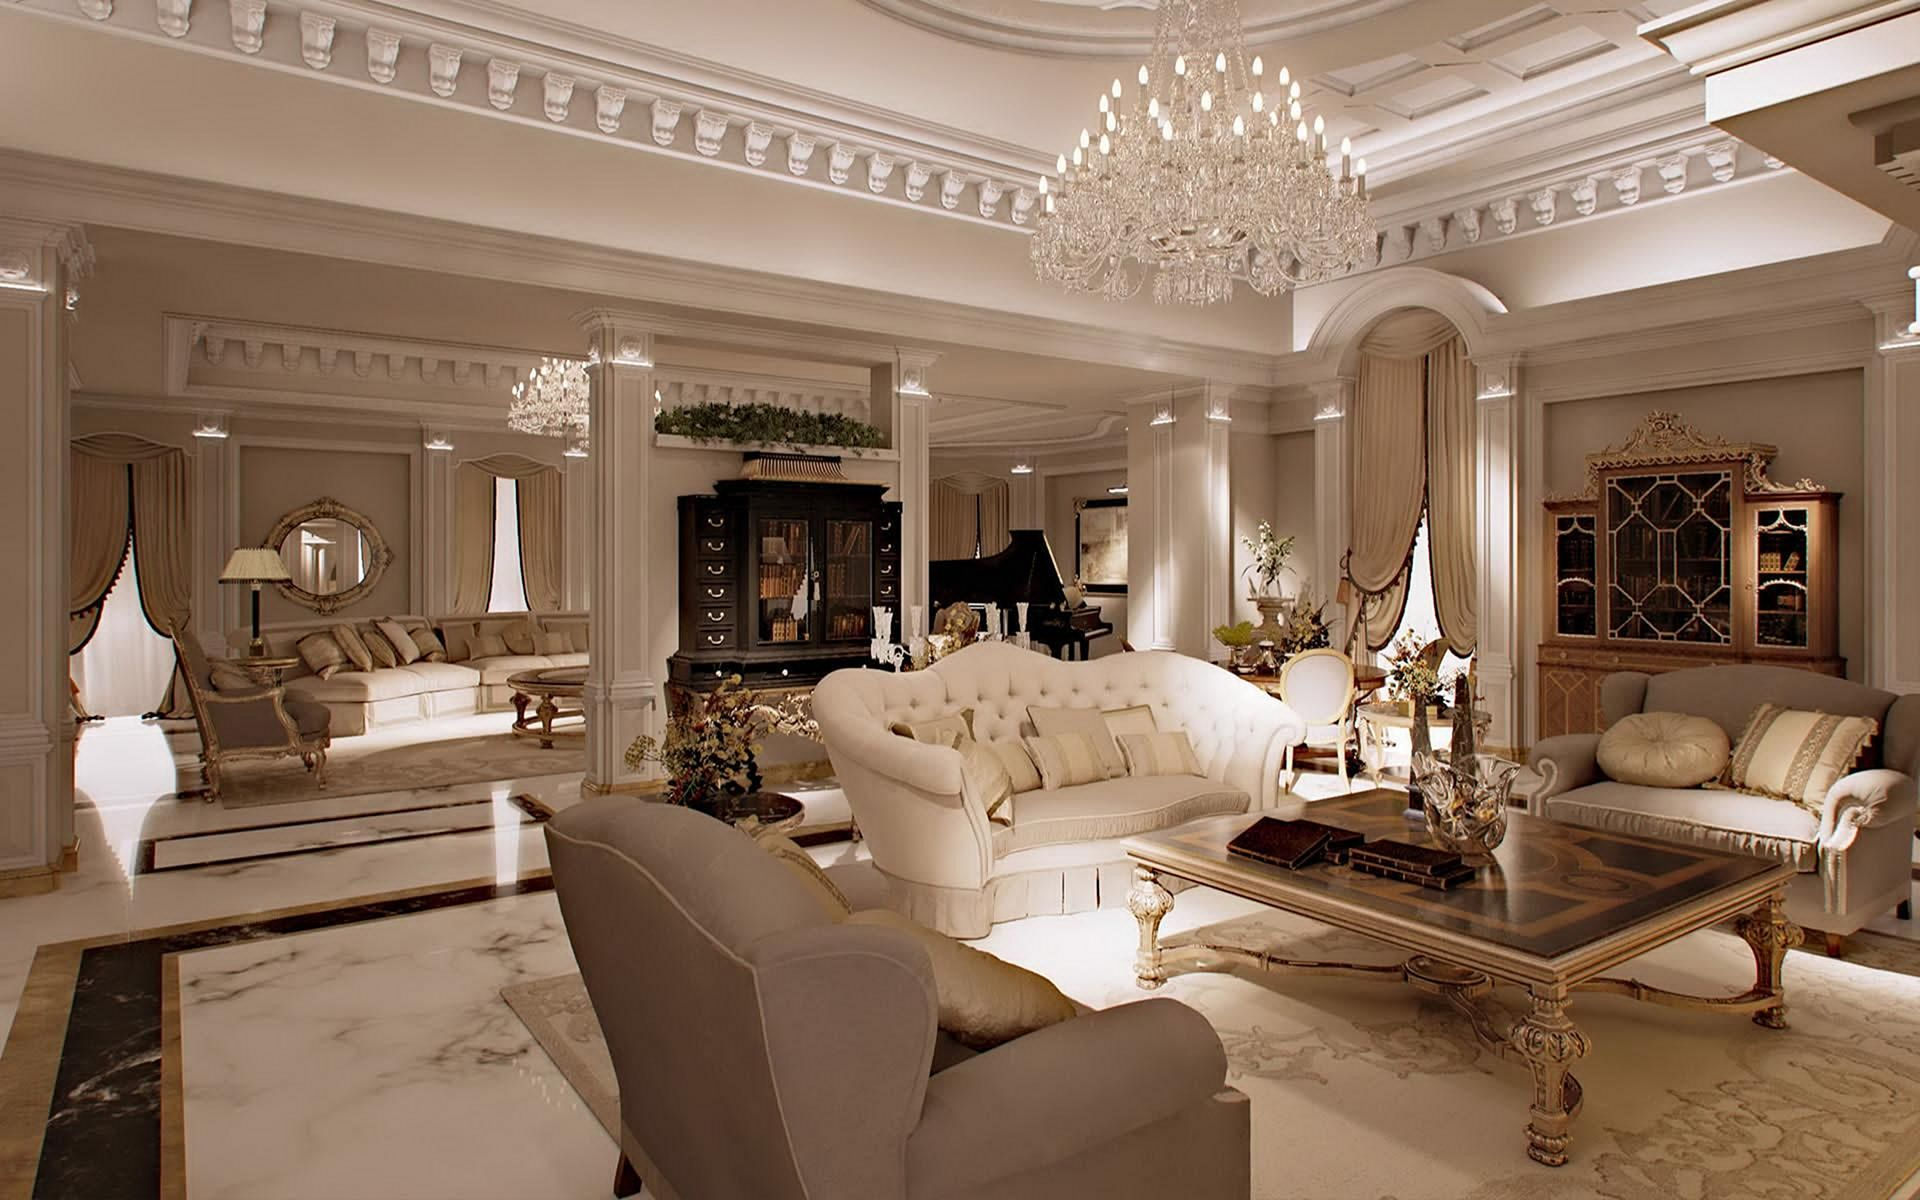 14 Comfortable Luxury Living Room Design Ideas That Will ...